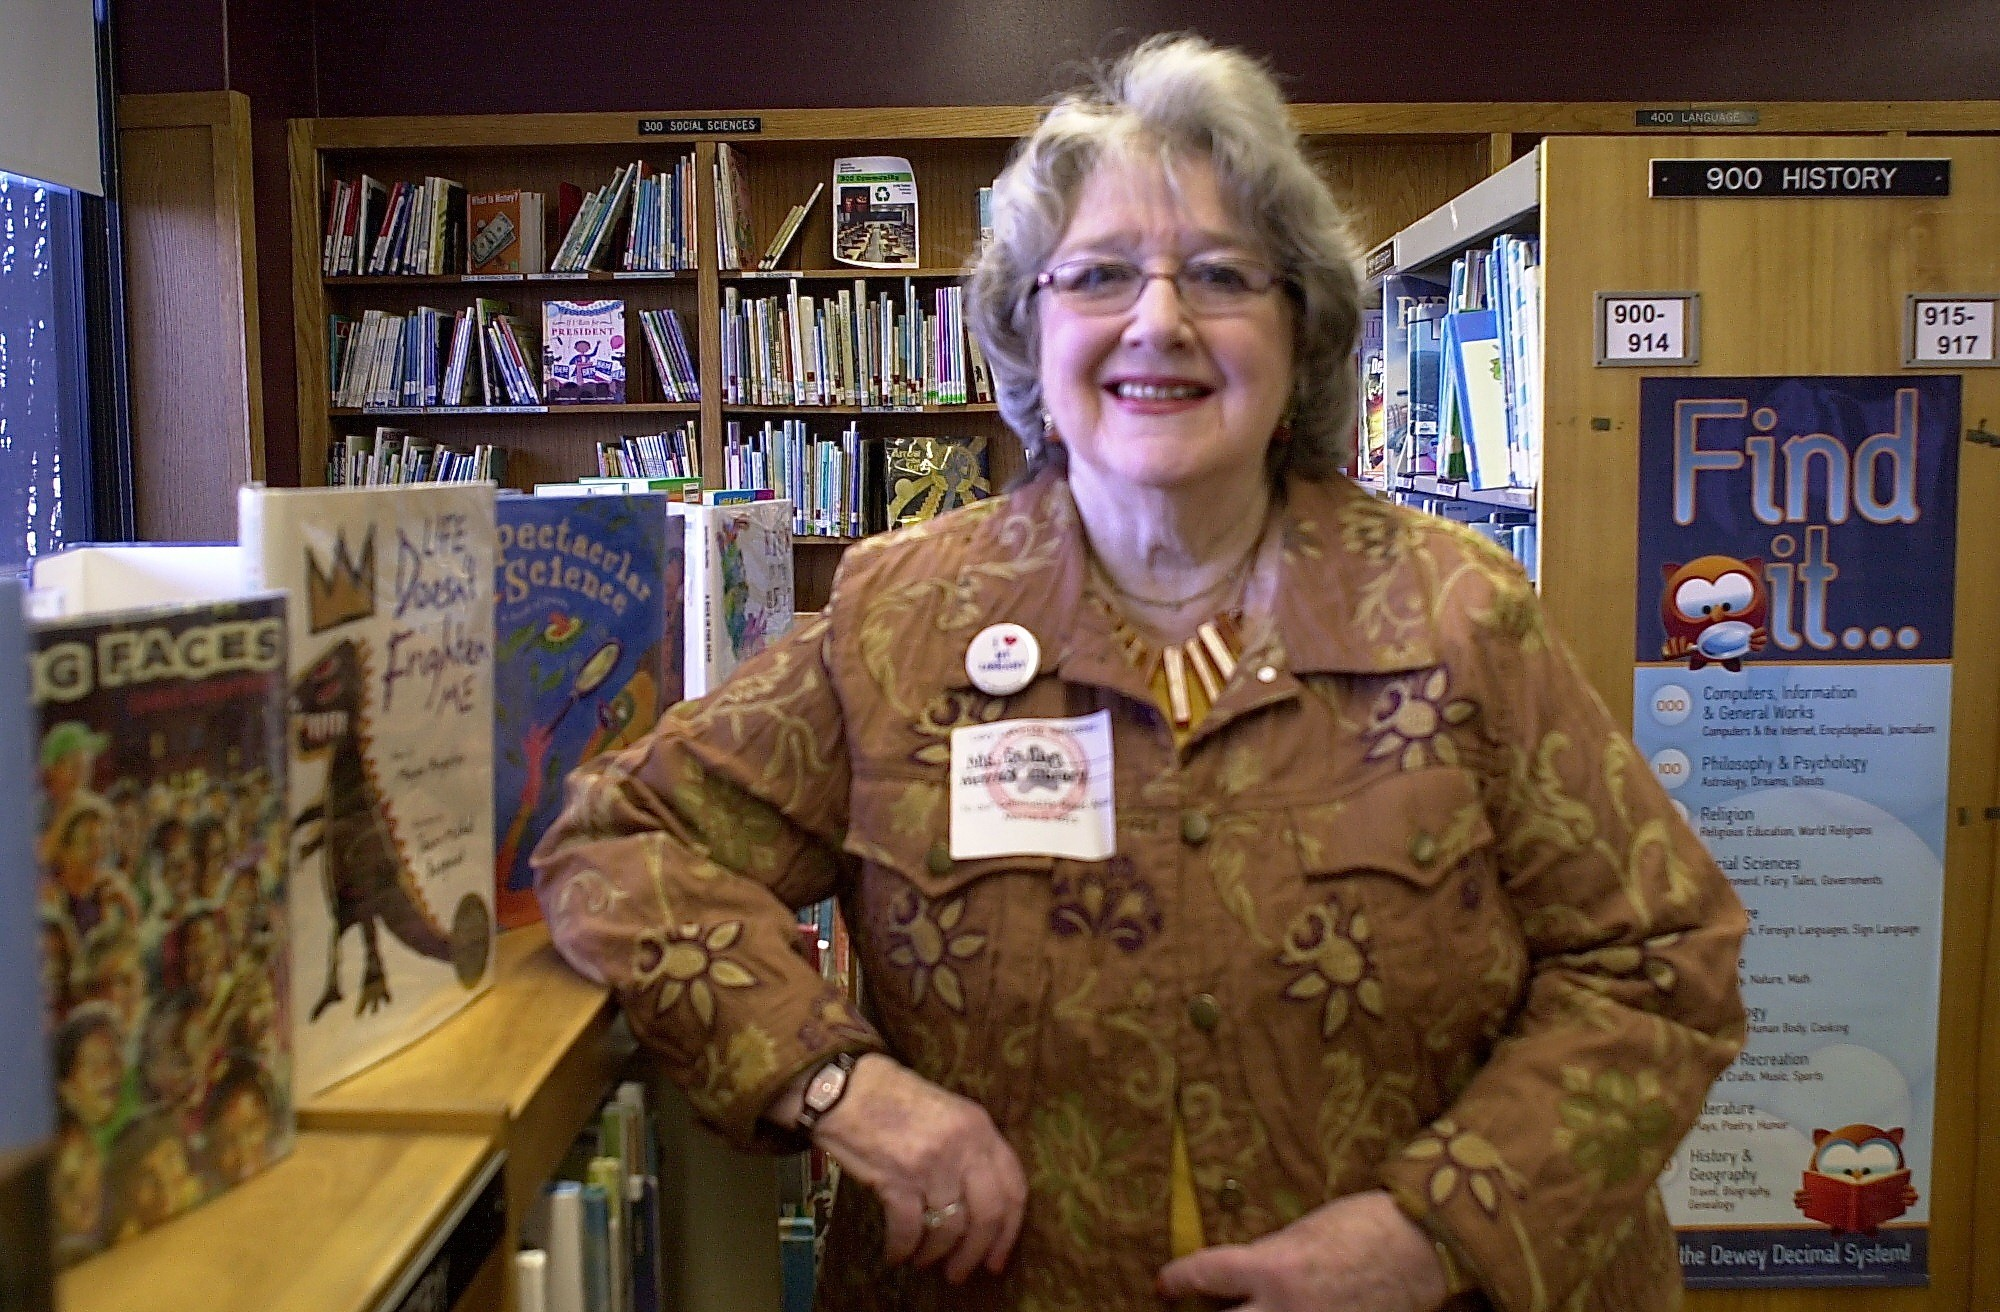 Merrick Library Board Trustee Susan Dillon is running unopposed this year. The library vote is on Tuesday, April 16, at the library.